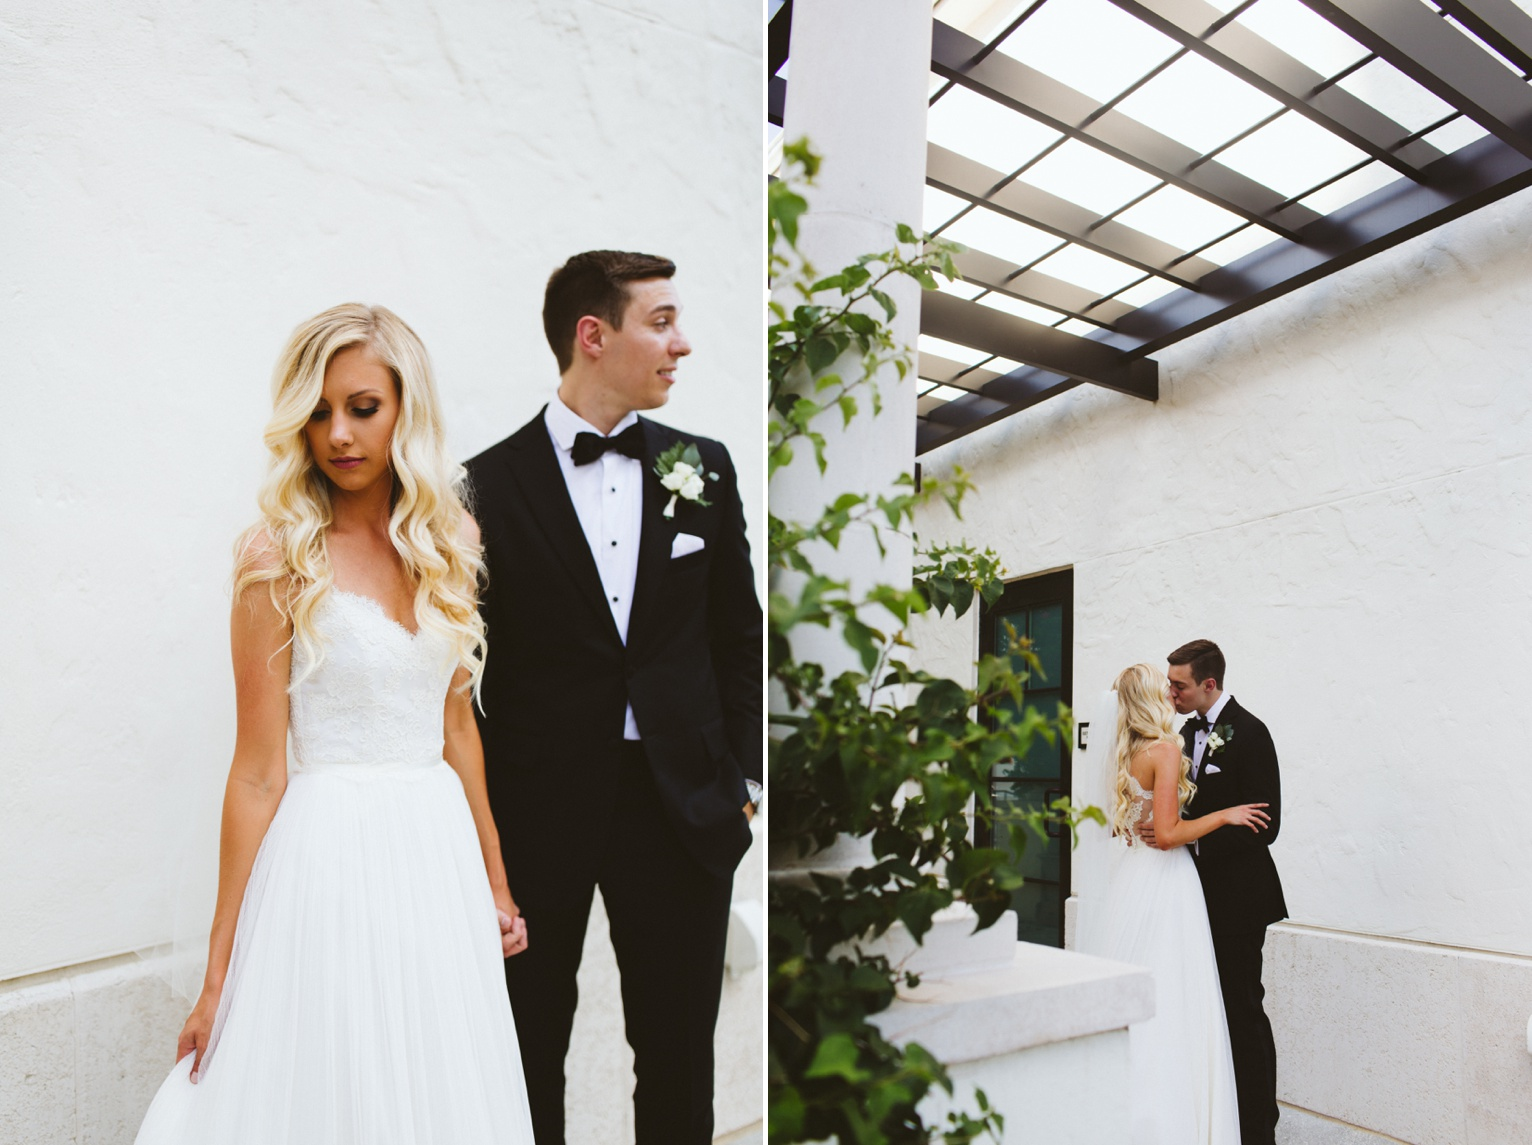 Dreamtownco.com_blog_Jordan&Lindsey_Wedding__0113.jpg